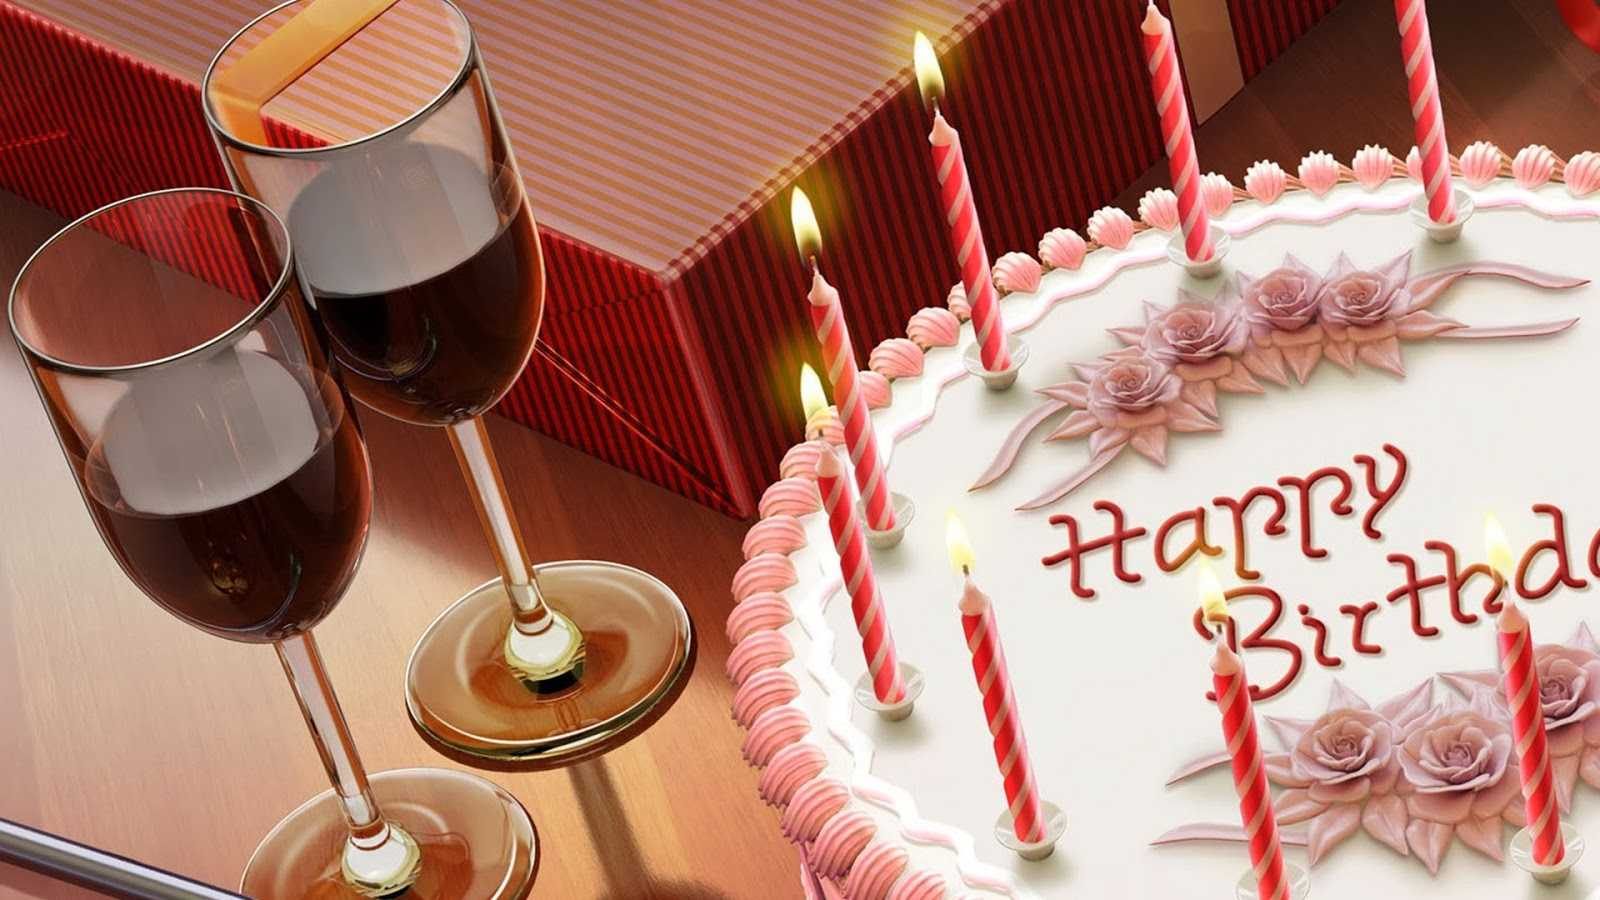 Birthday Cake Wallpaper 3d Download Advance Happy Birthday Wishes Hd Images Free Download